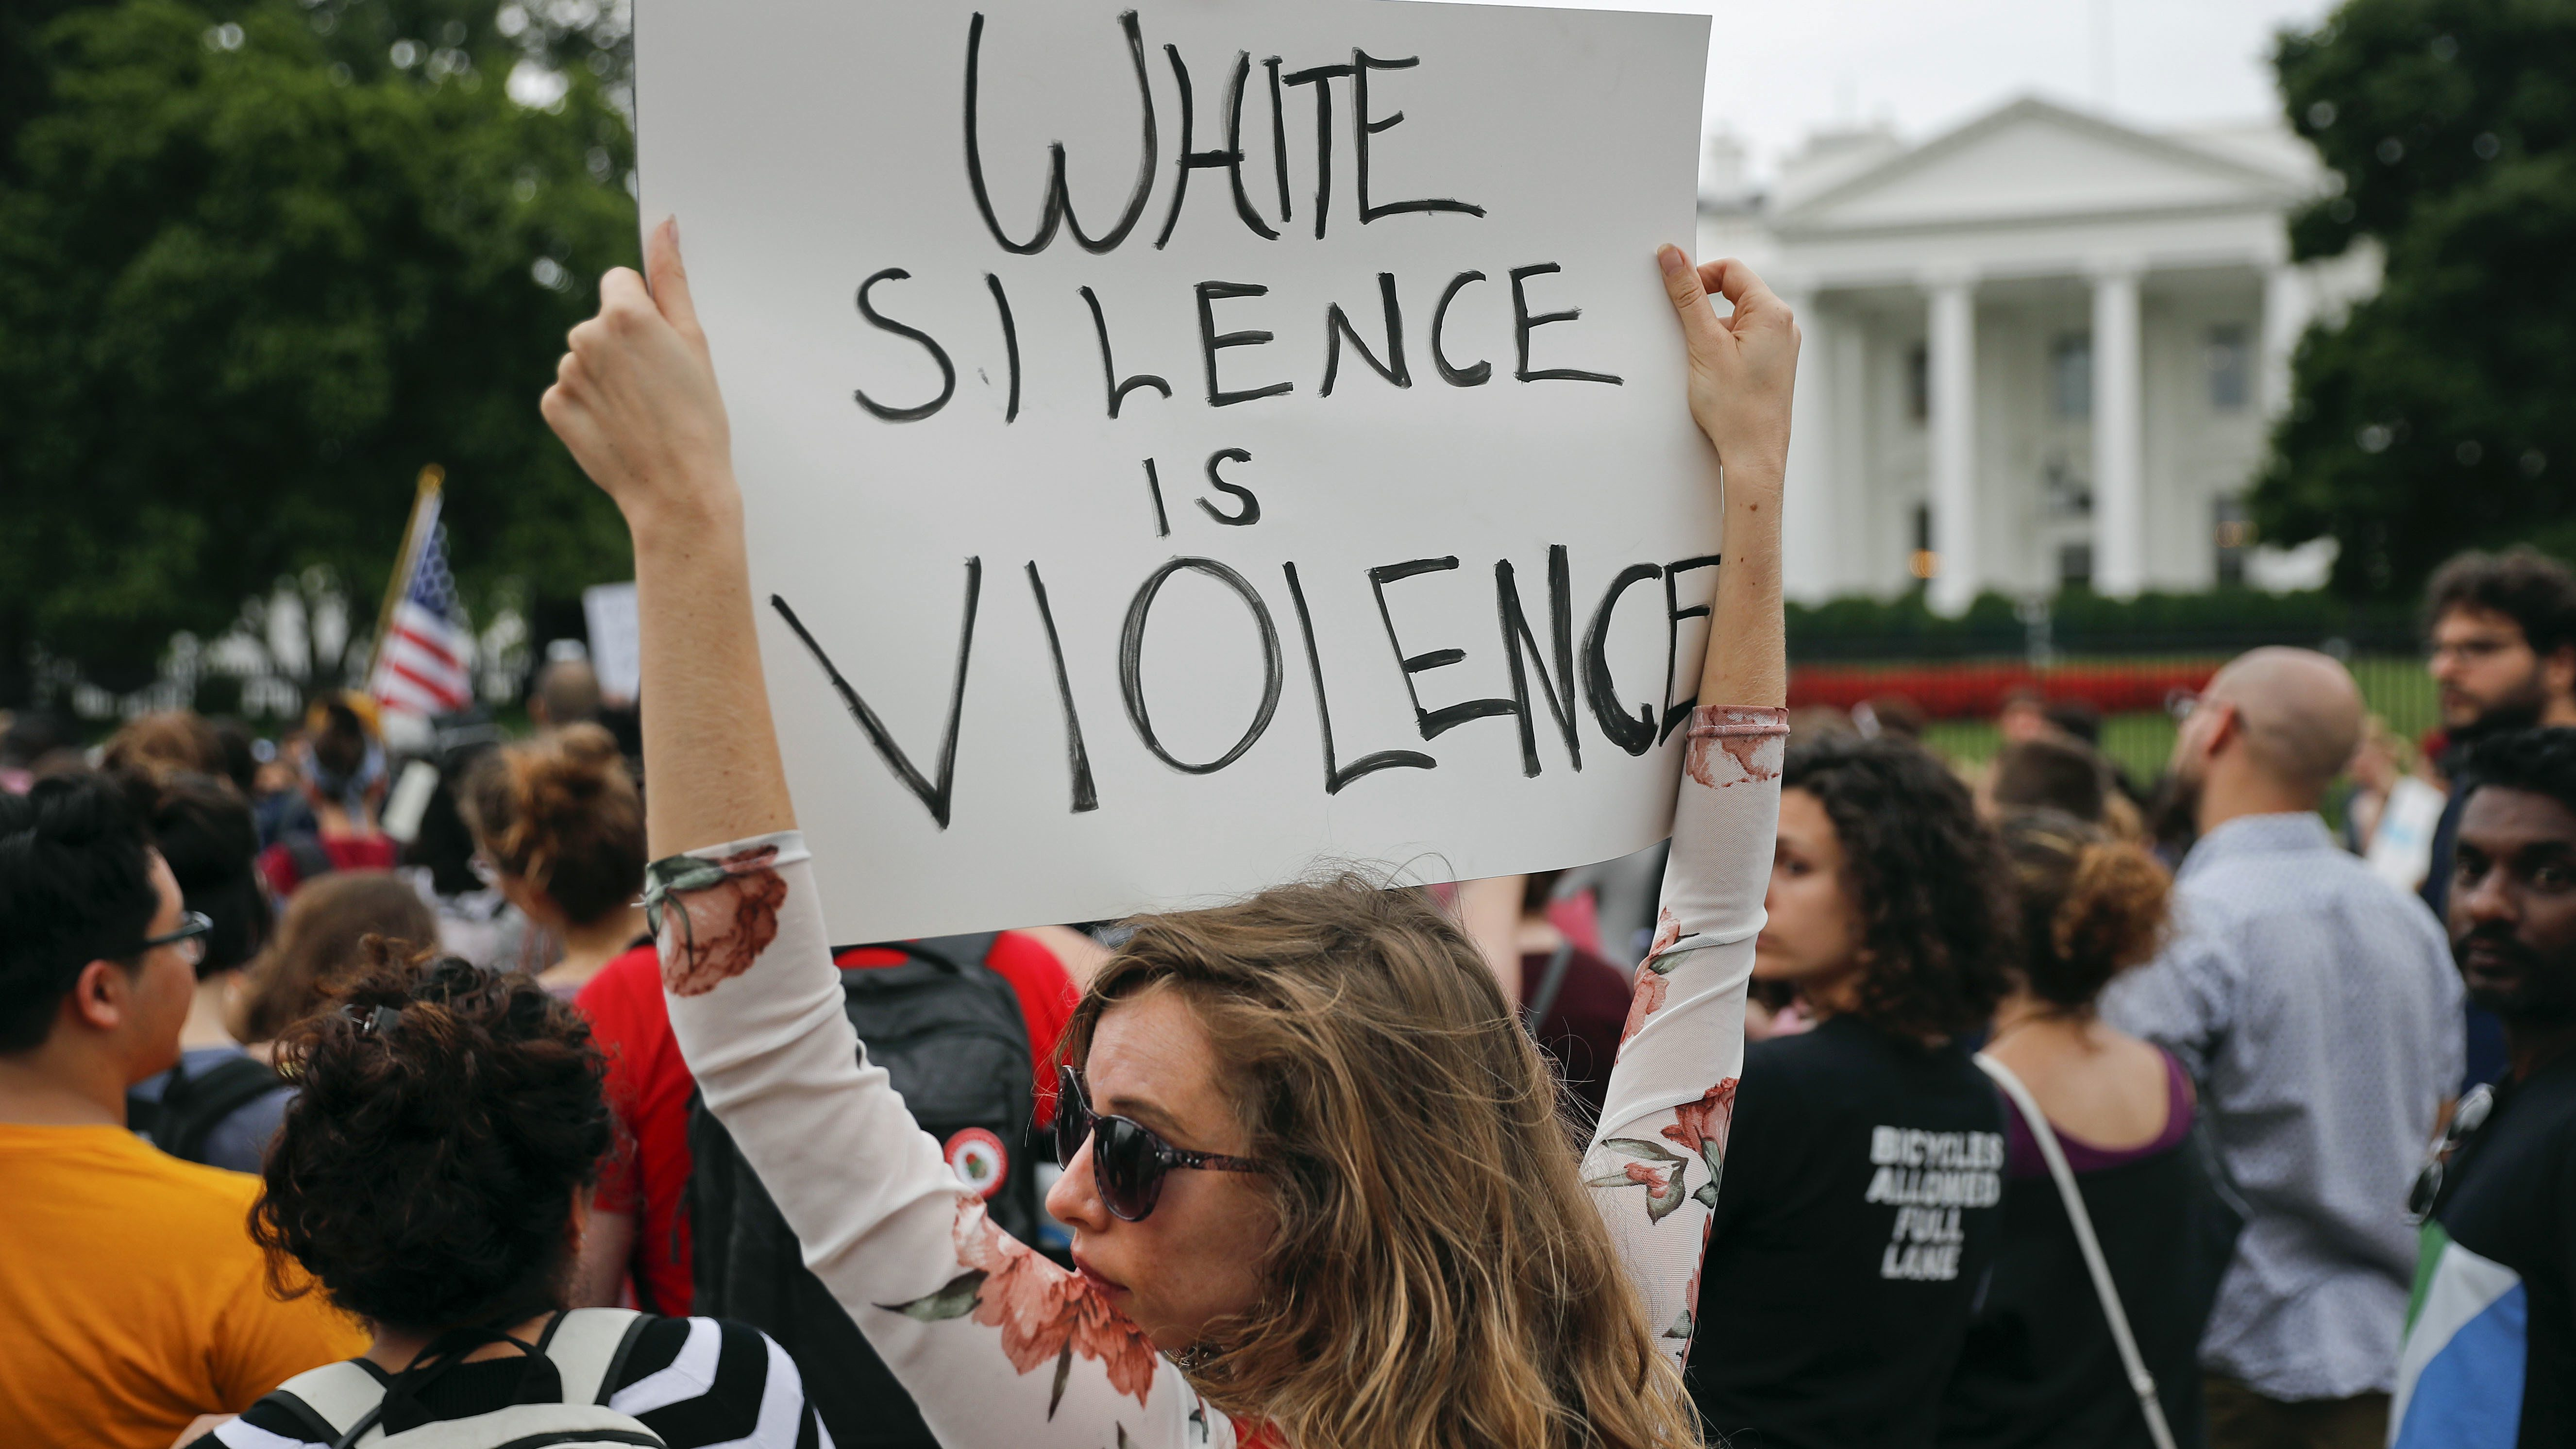 Demonstrators gather on Pennsylvania Avenue in front of the White House in Washington, Monday, Aug. 14, 2017. For the second night in a row, people gathered in front of the White House to protest the white nationalist rally in Charlottesville, Va. (AP Photo/Pablo Martinez Monsivais)